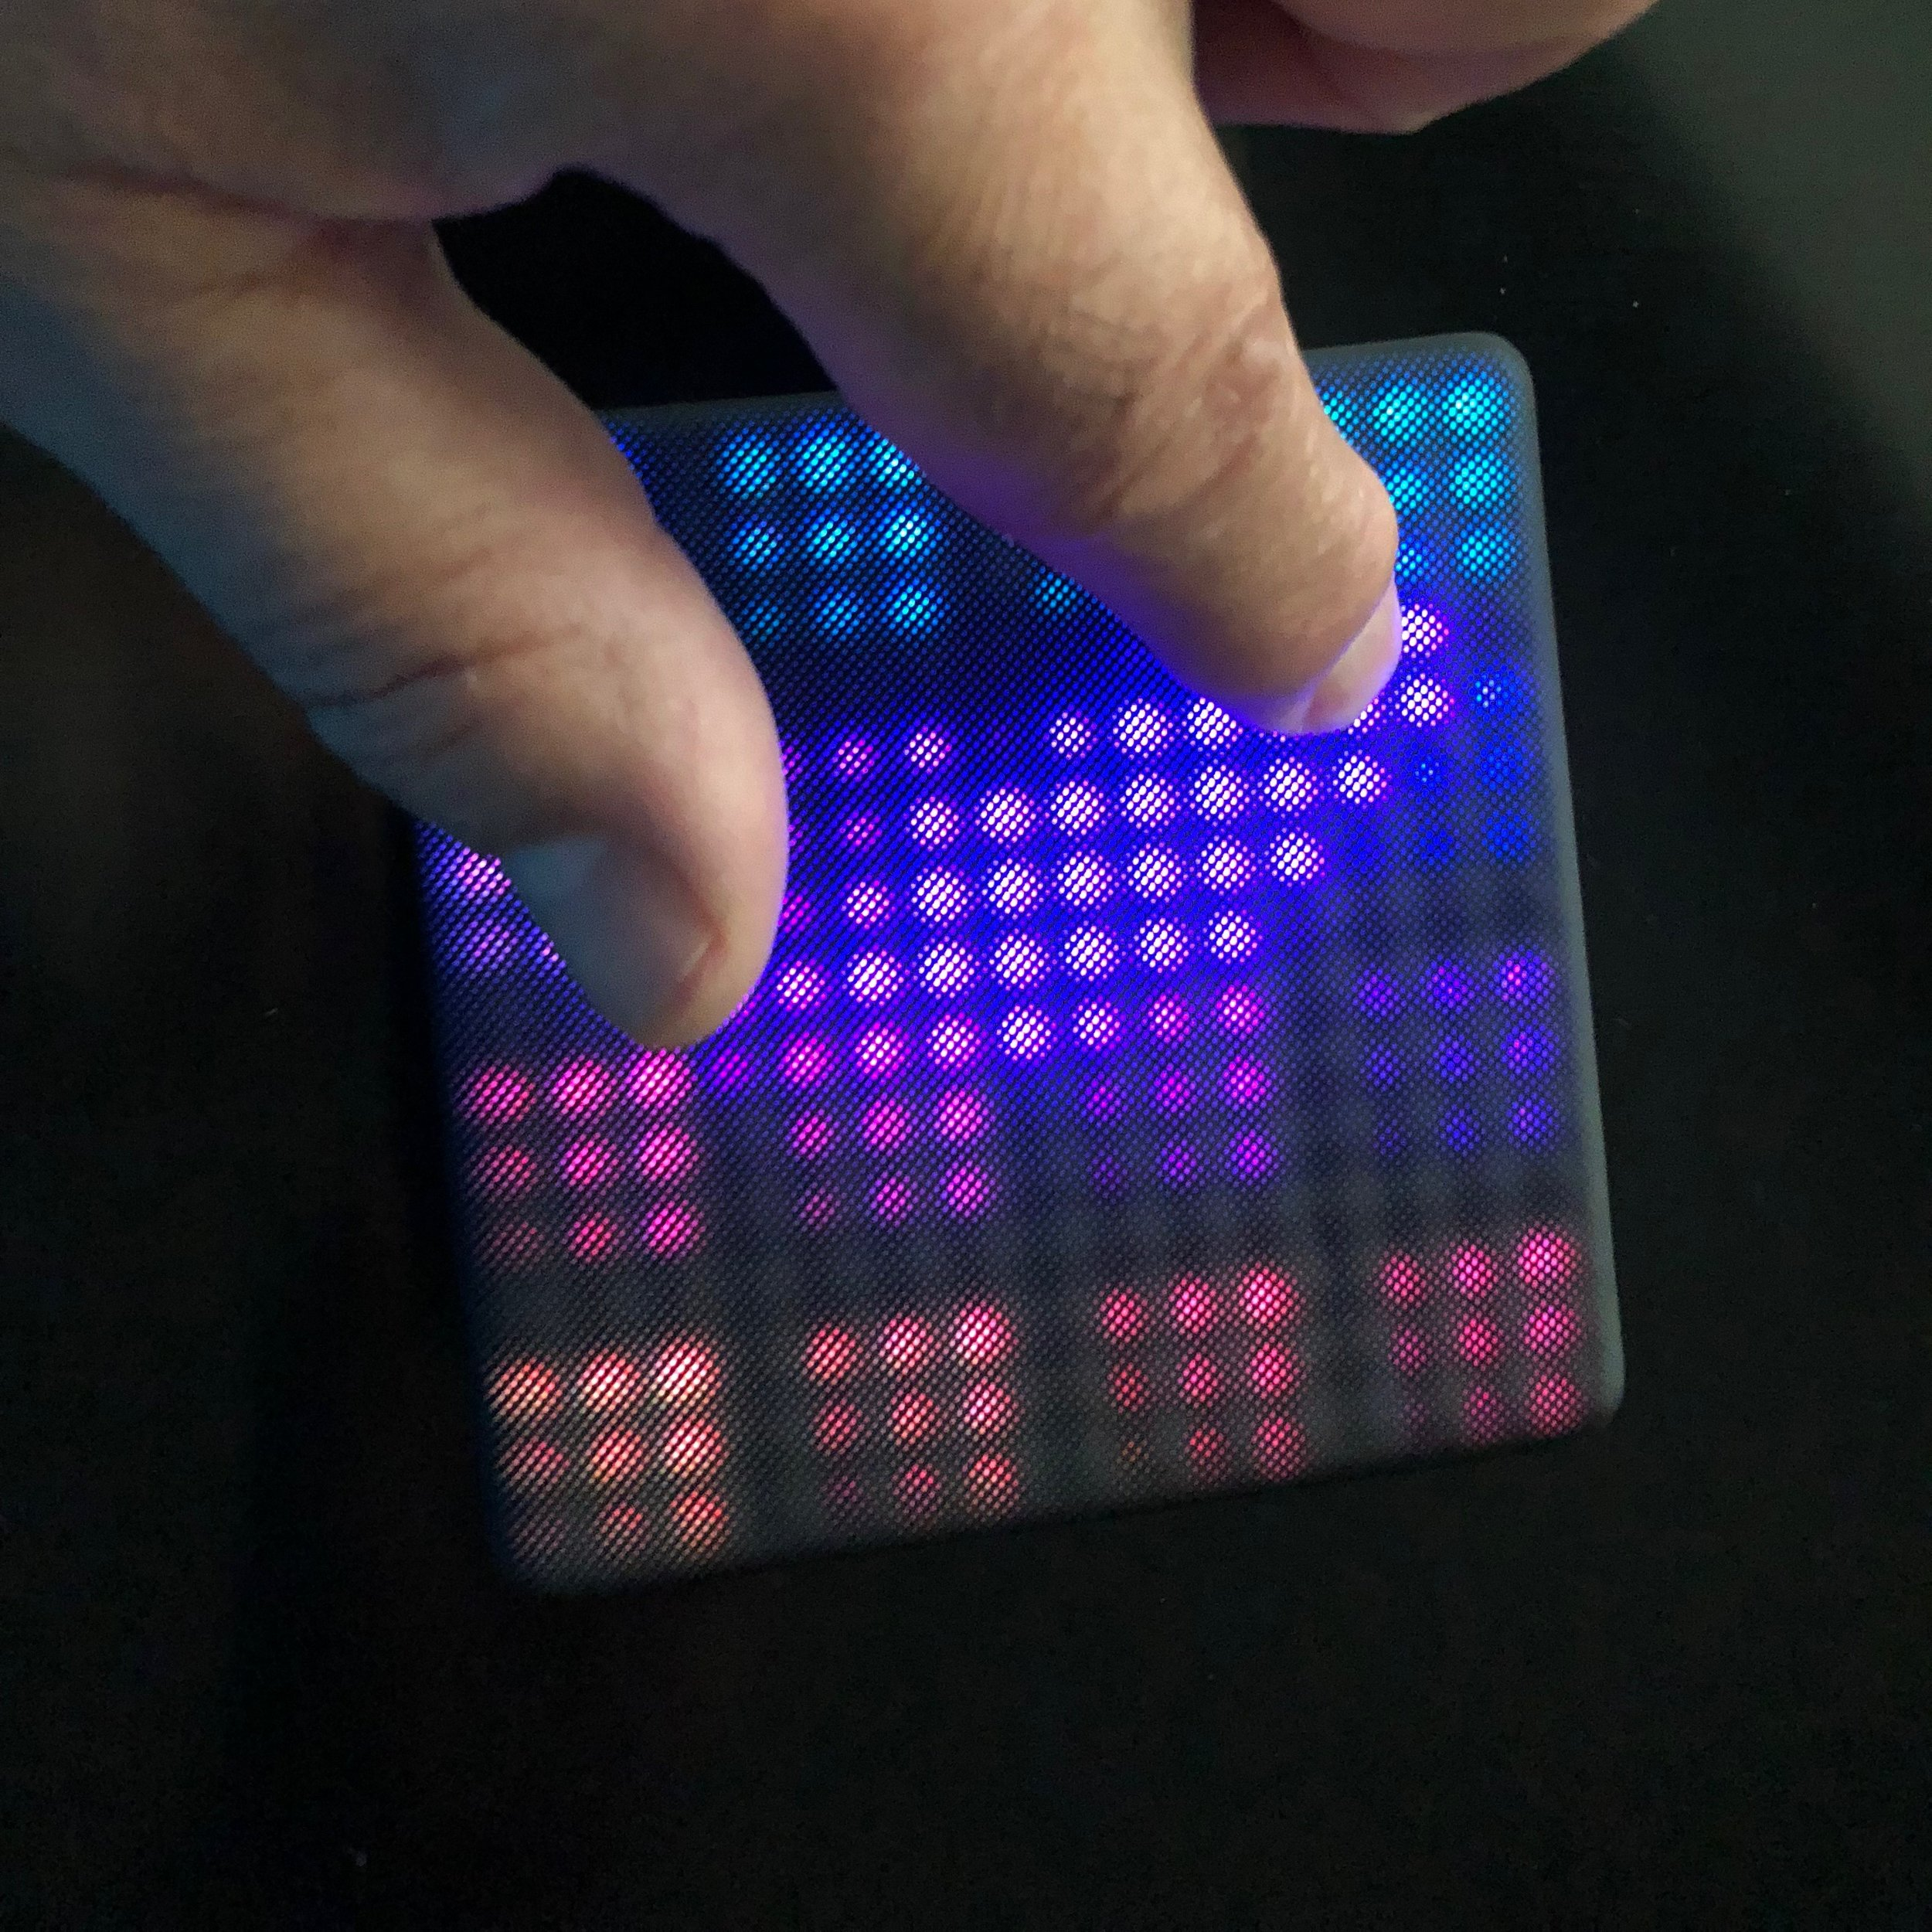 The touch gestures and LED feedback make the Lightpad Block M a unique MIDI controller